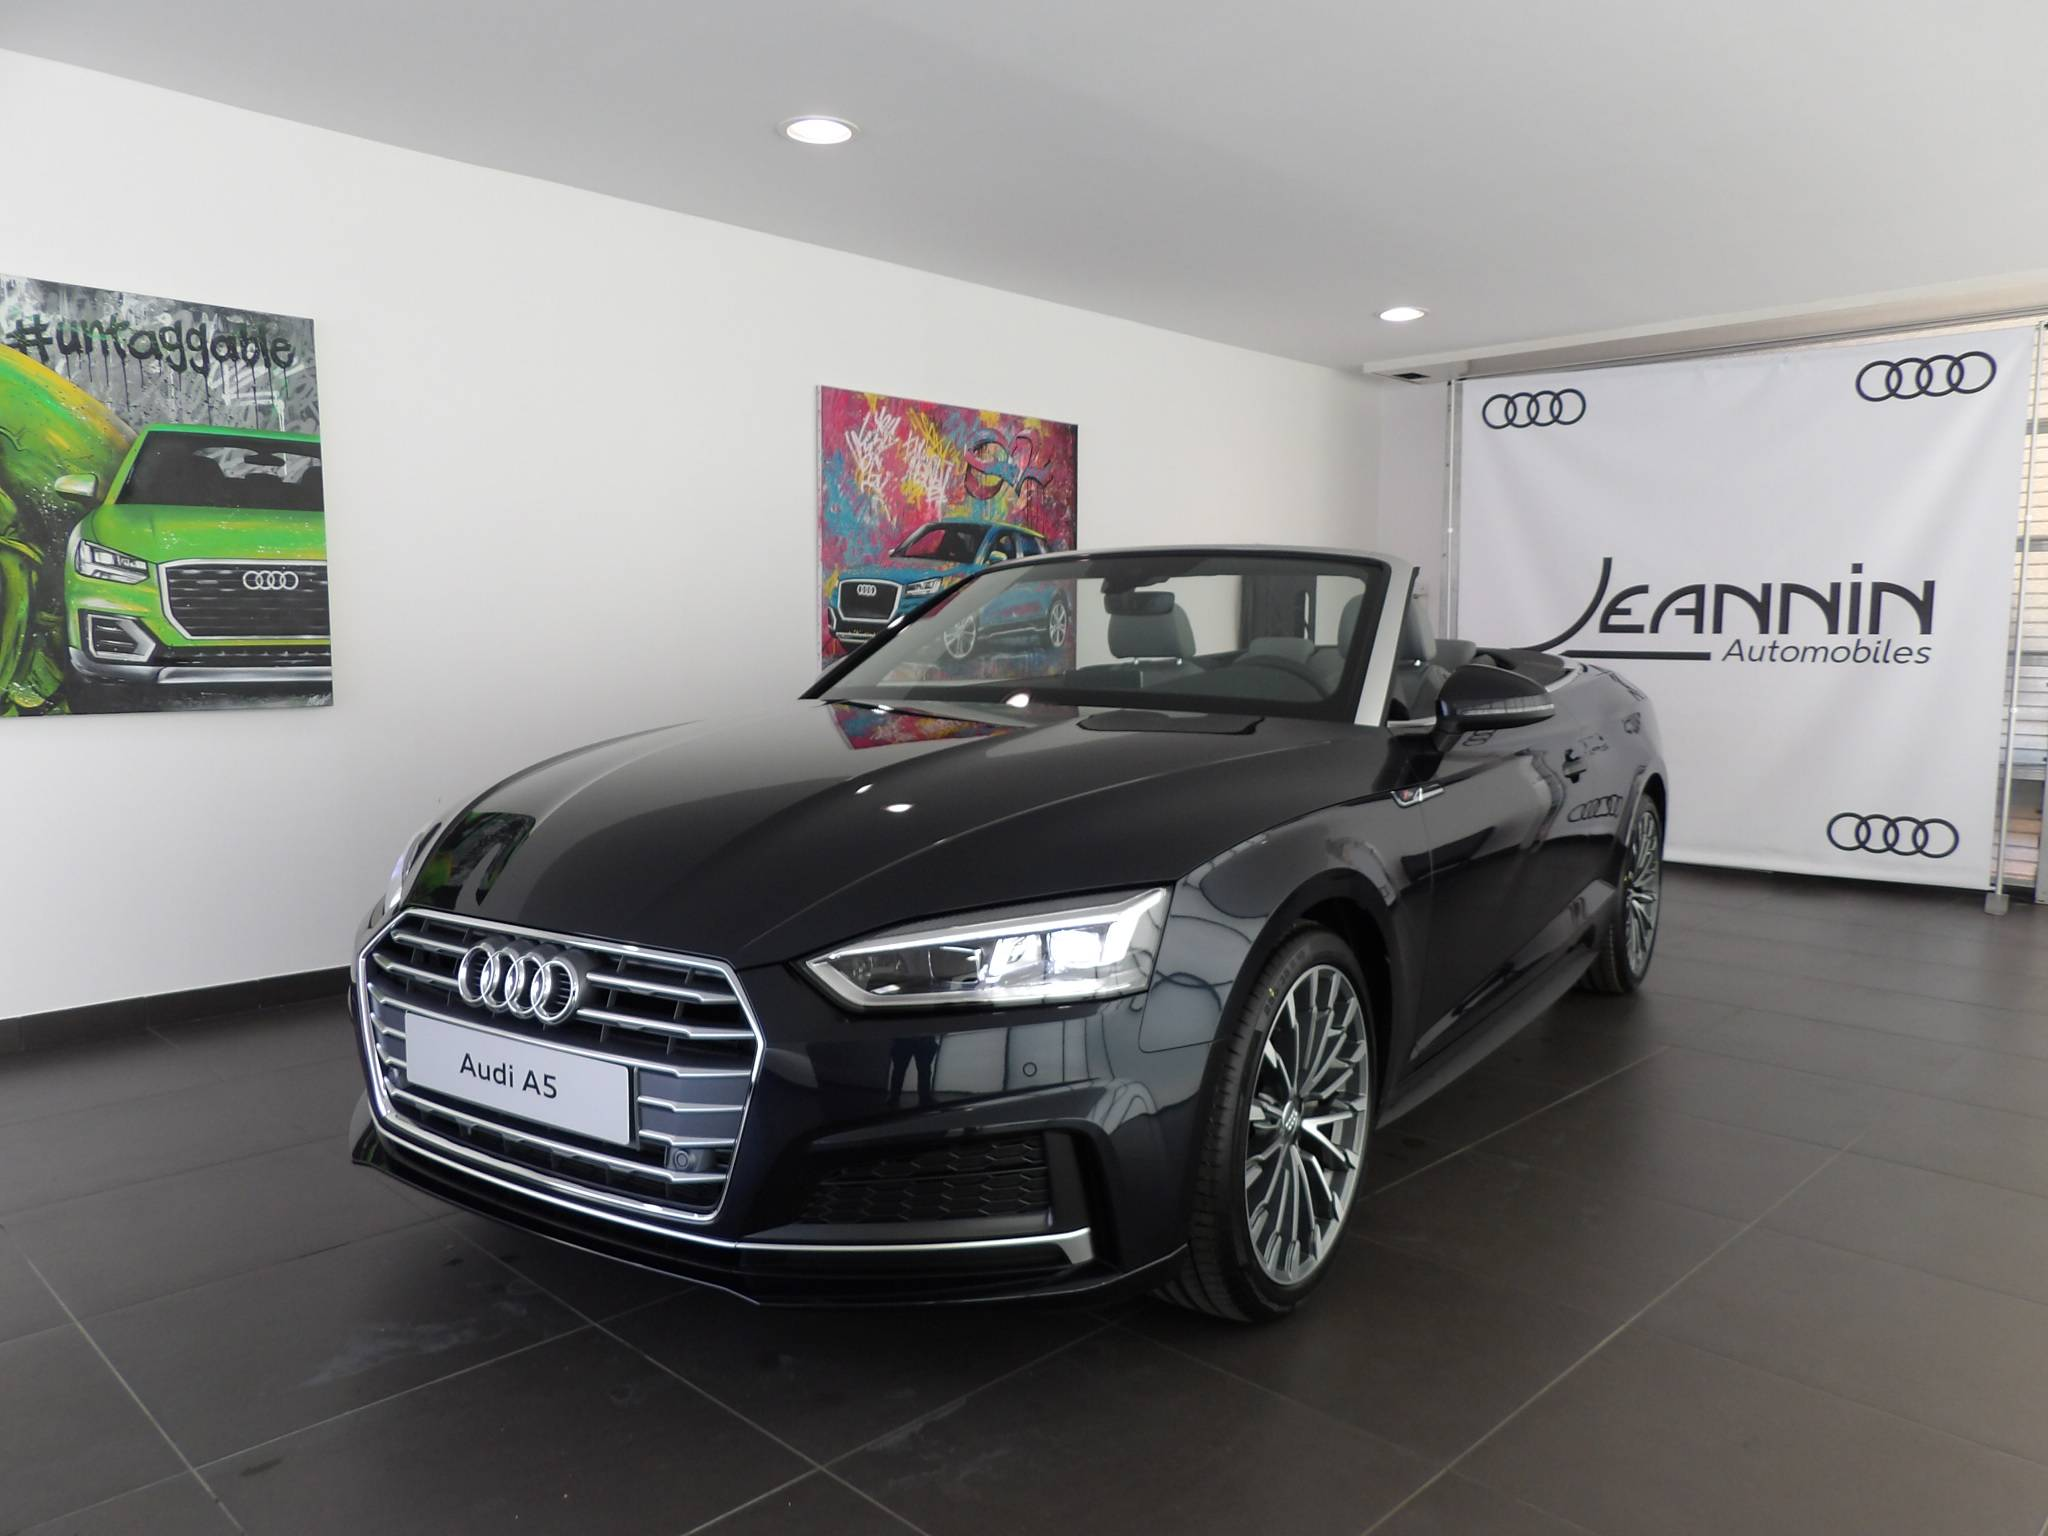 A5 Cabriolet 2.0 TDI 190 S tronic 7